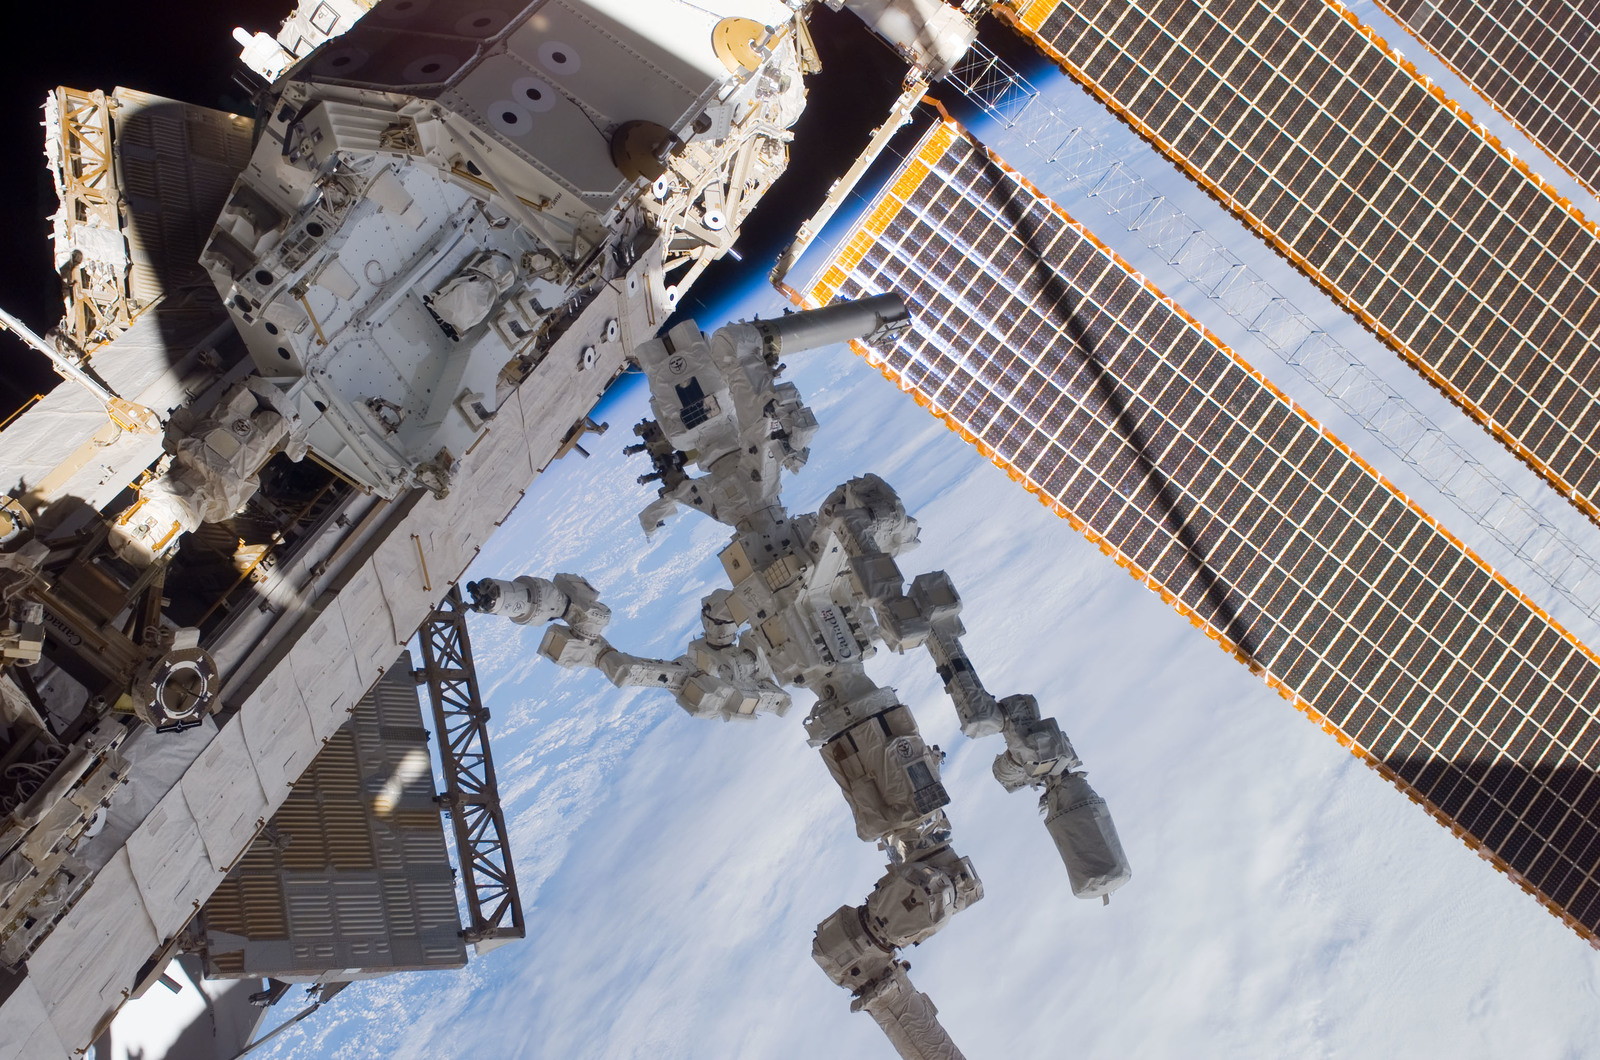 S123E007085 - STS-123 - Dextre on P1 Truss platform during Expedition 16 / STS-123 Joint Operations